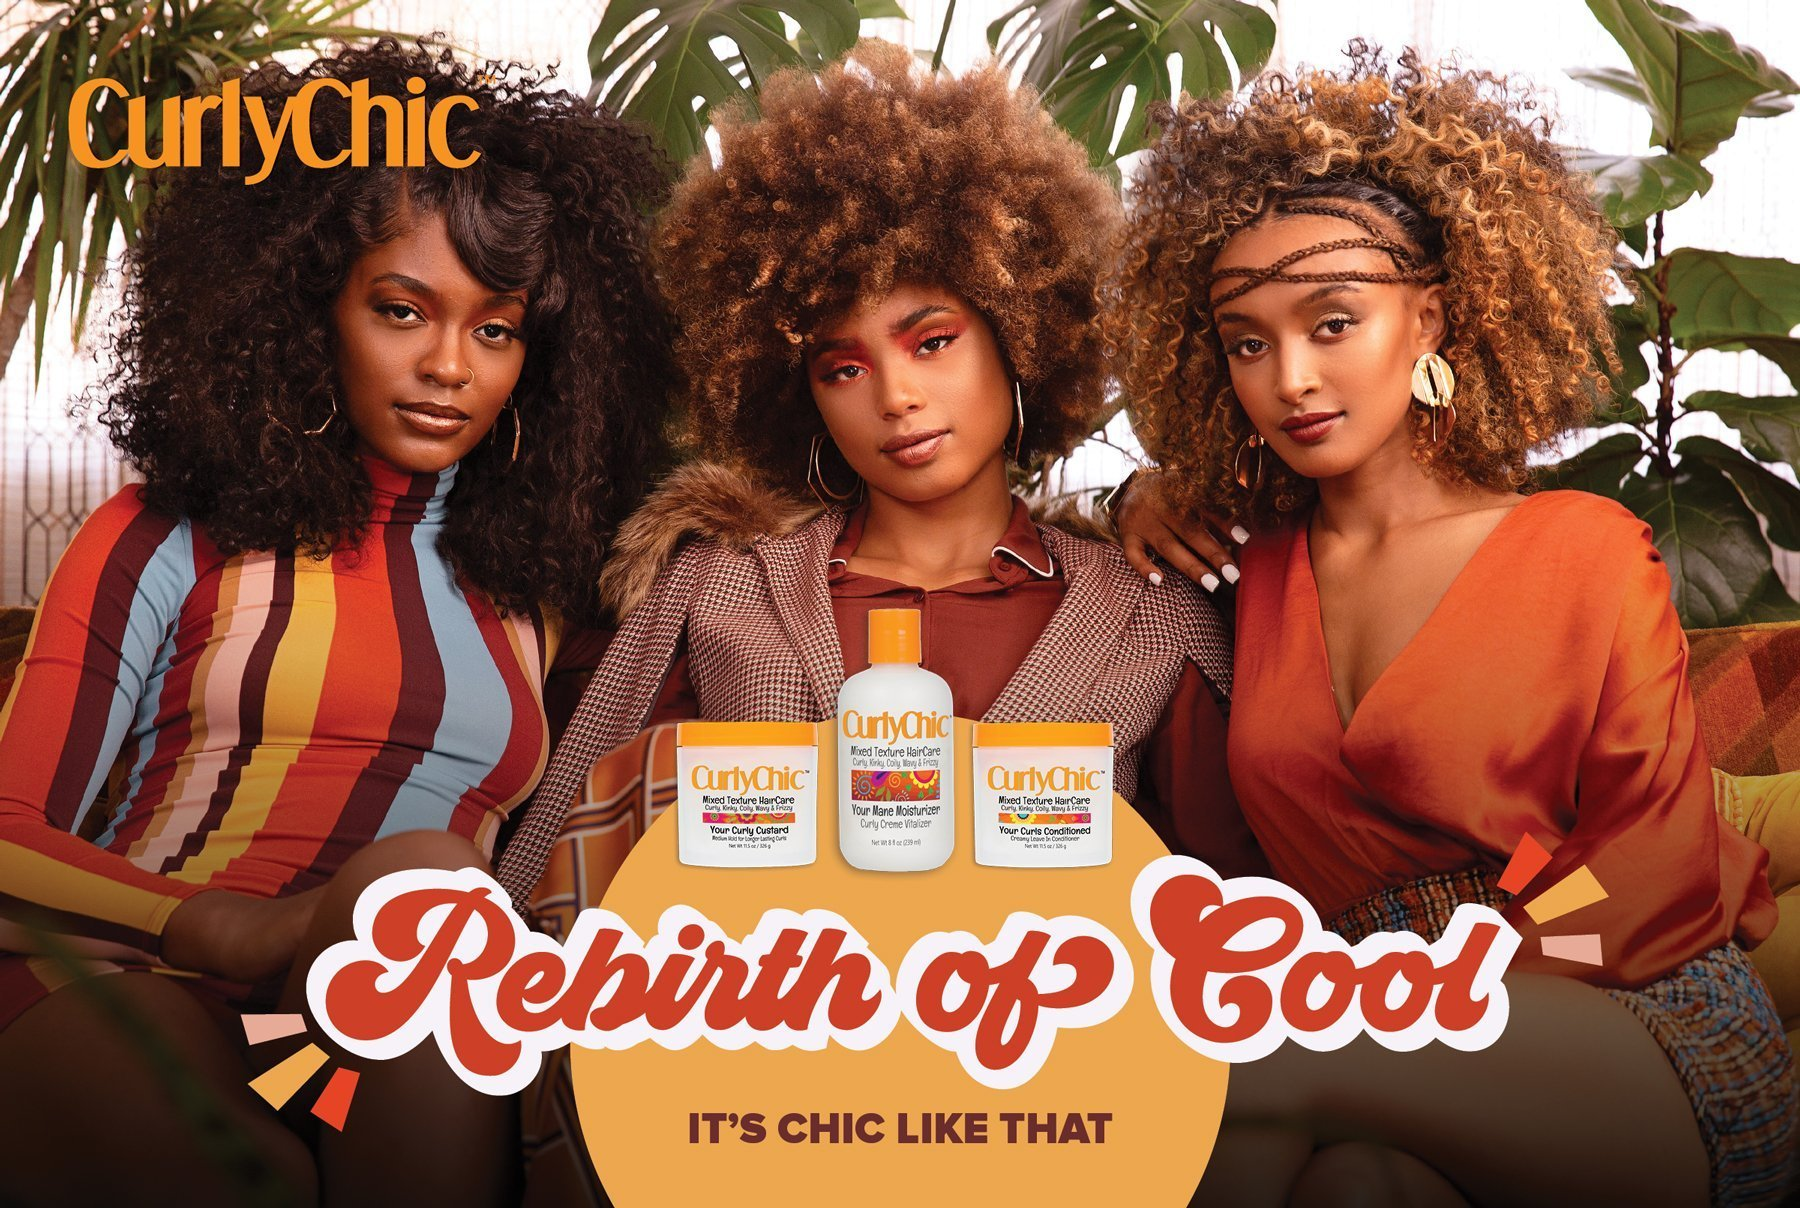 CurlyChic Rebirth of Cool